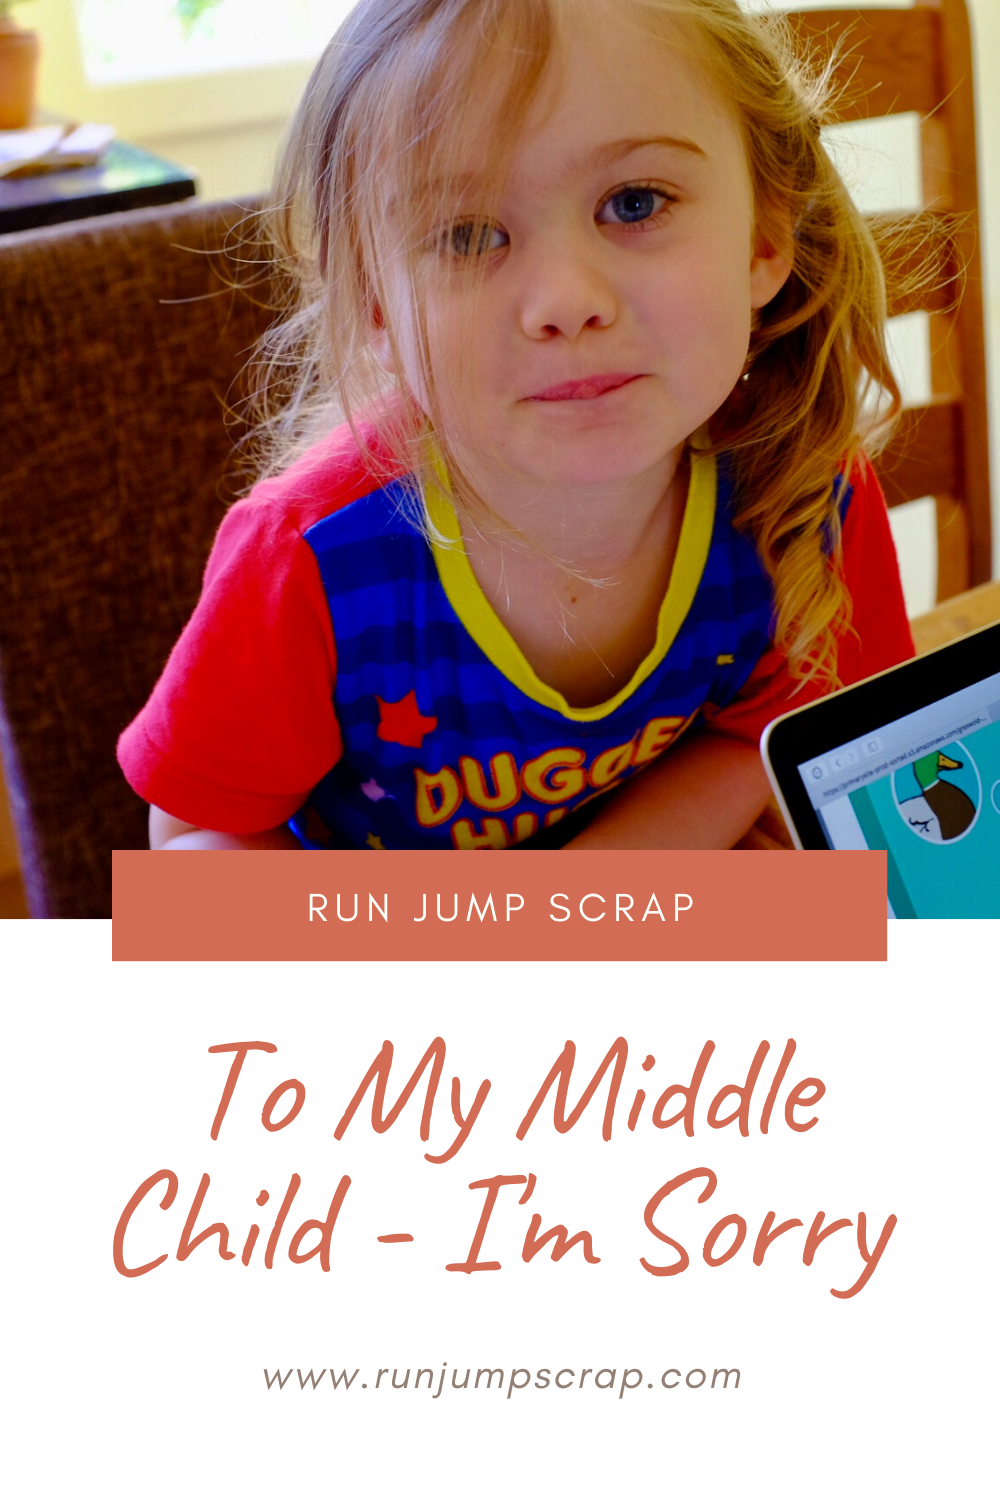 To my middle child - I'm sorry